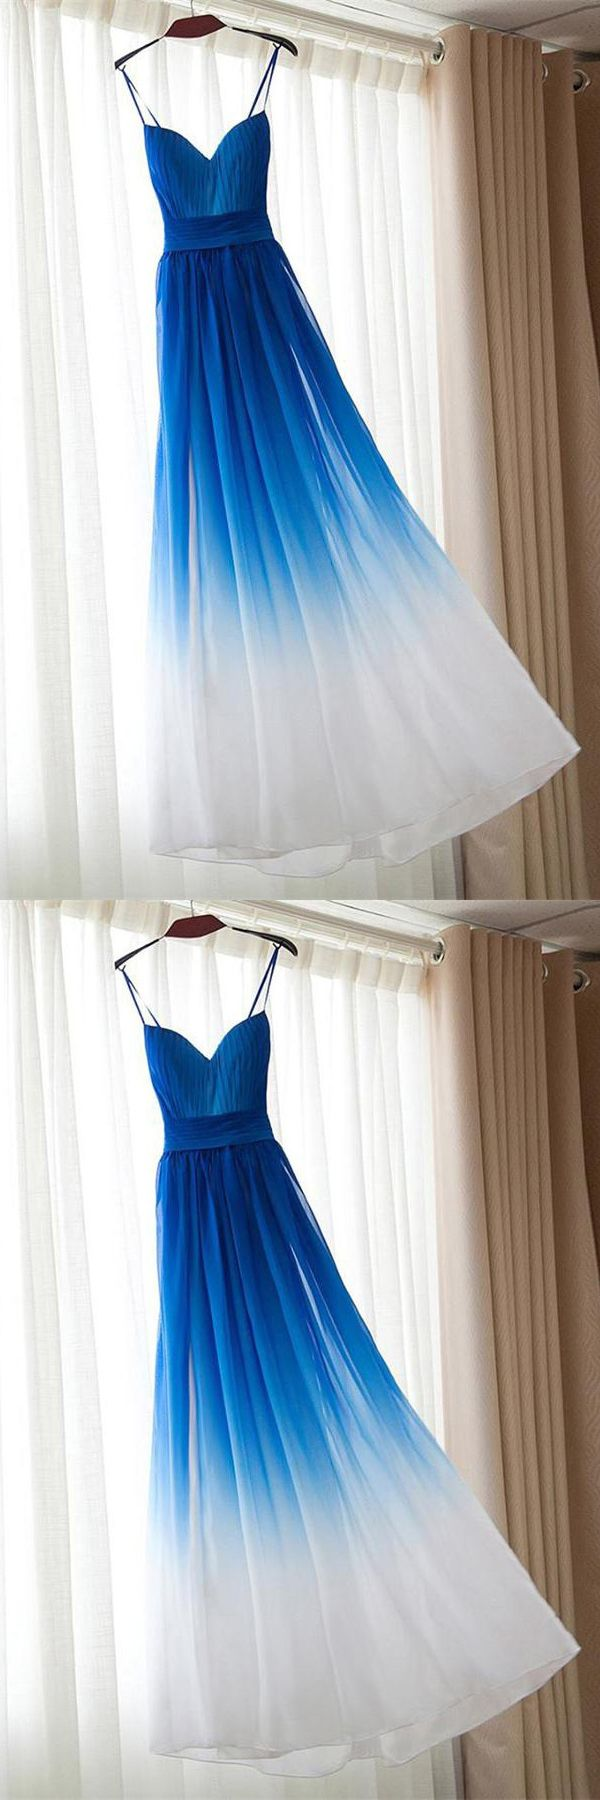 Ombre Chiffon Prom Dresses,Gradient Chiffon Prom Dresses,Long Prom Dresses,Prom Dress,Prom Gowns,Prom Dresses,Royal Blue Prom Dresses,White Prom Dresses,Simple Prom Dresses,Cheap Prom Dresses,A-line Prom Dresses,Elegant Prom Dresses,Modest Prom Dresses,Bridesmaid Dresses,Evening Dresses,Homecoming Dresses,Long Homecoming Dresses,Evening Gowns,Party Dresses,Women Dresses,Wedding Party Dresses